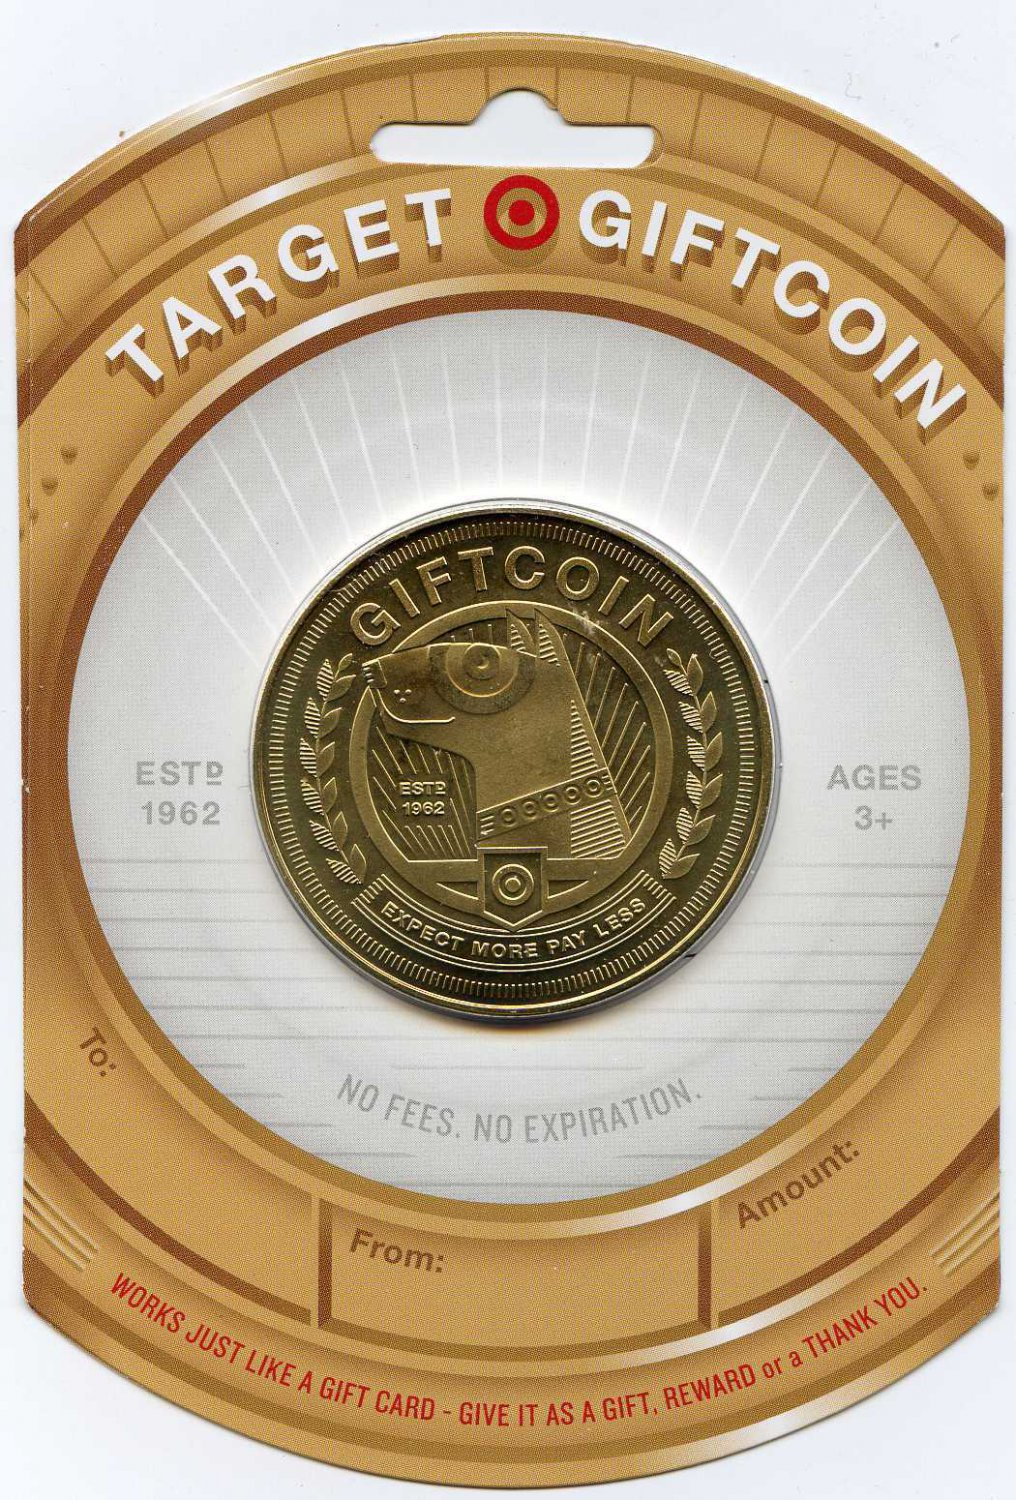 FIVE (5) TARGET GOLD COIN SPECIAL LIMITED EDTION GIFT CARD SOLD OUT in store